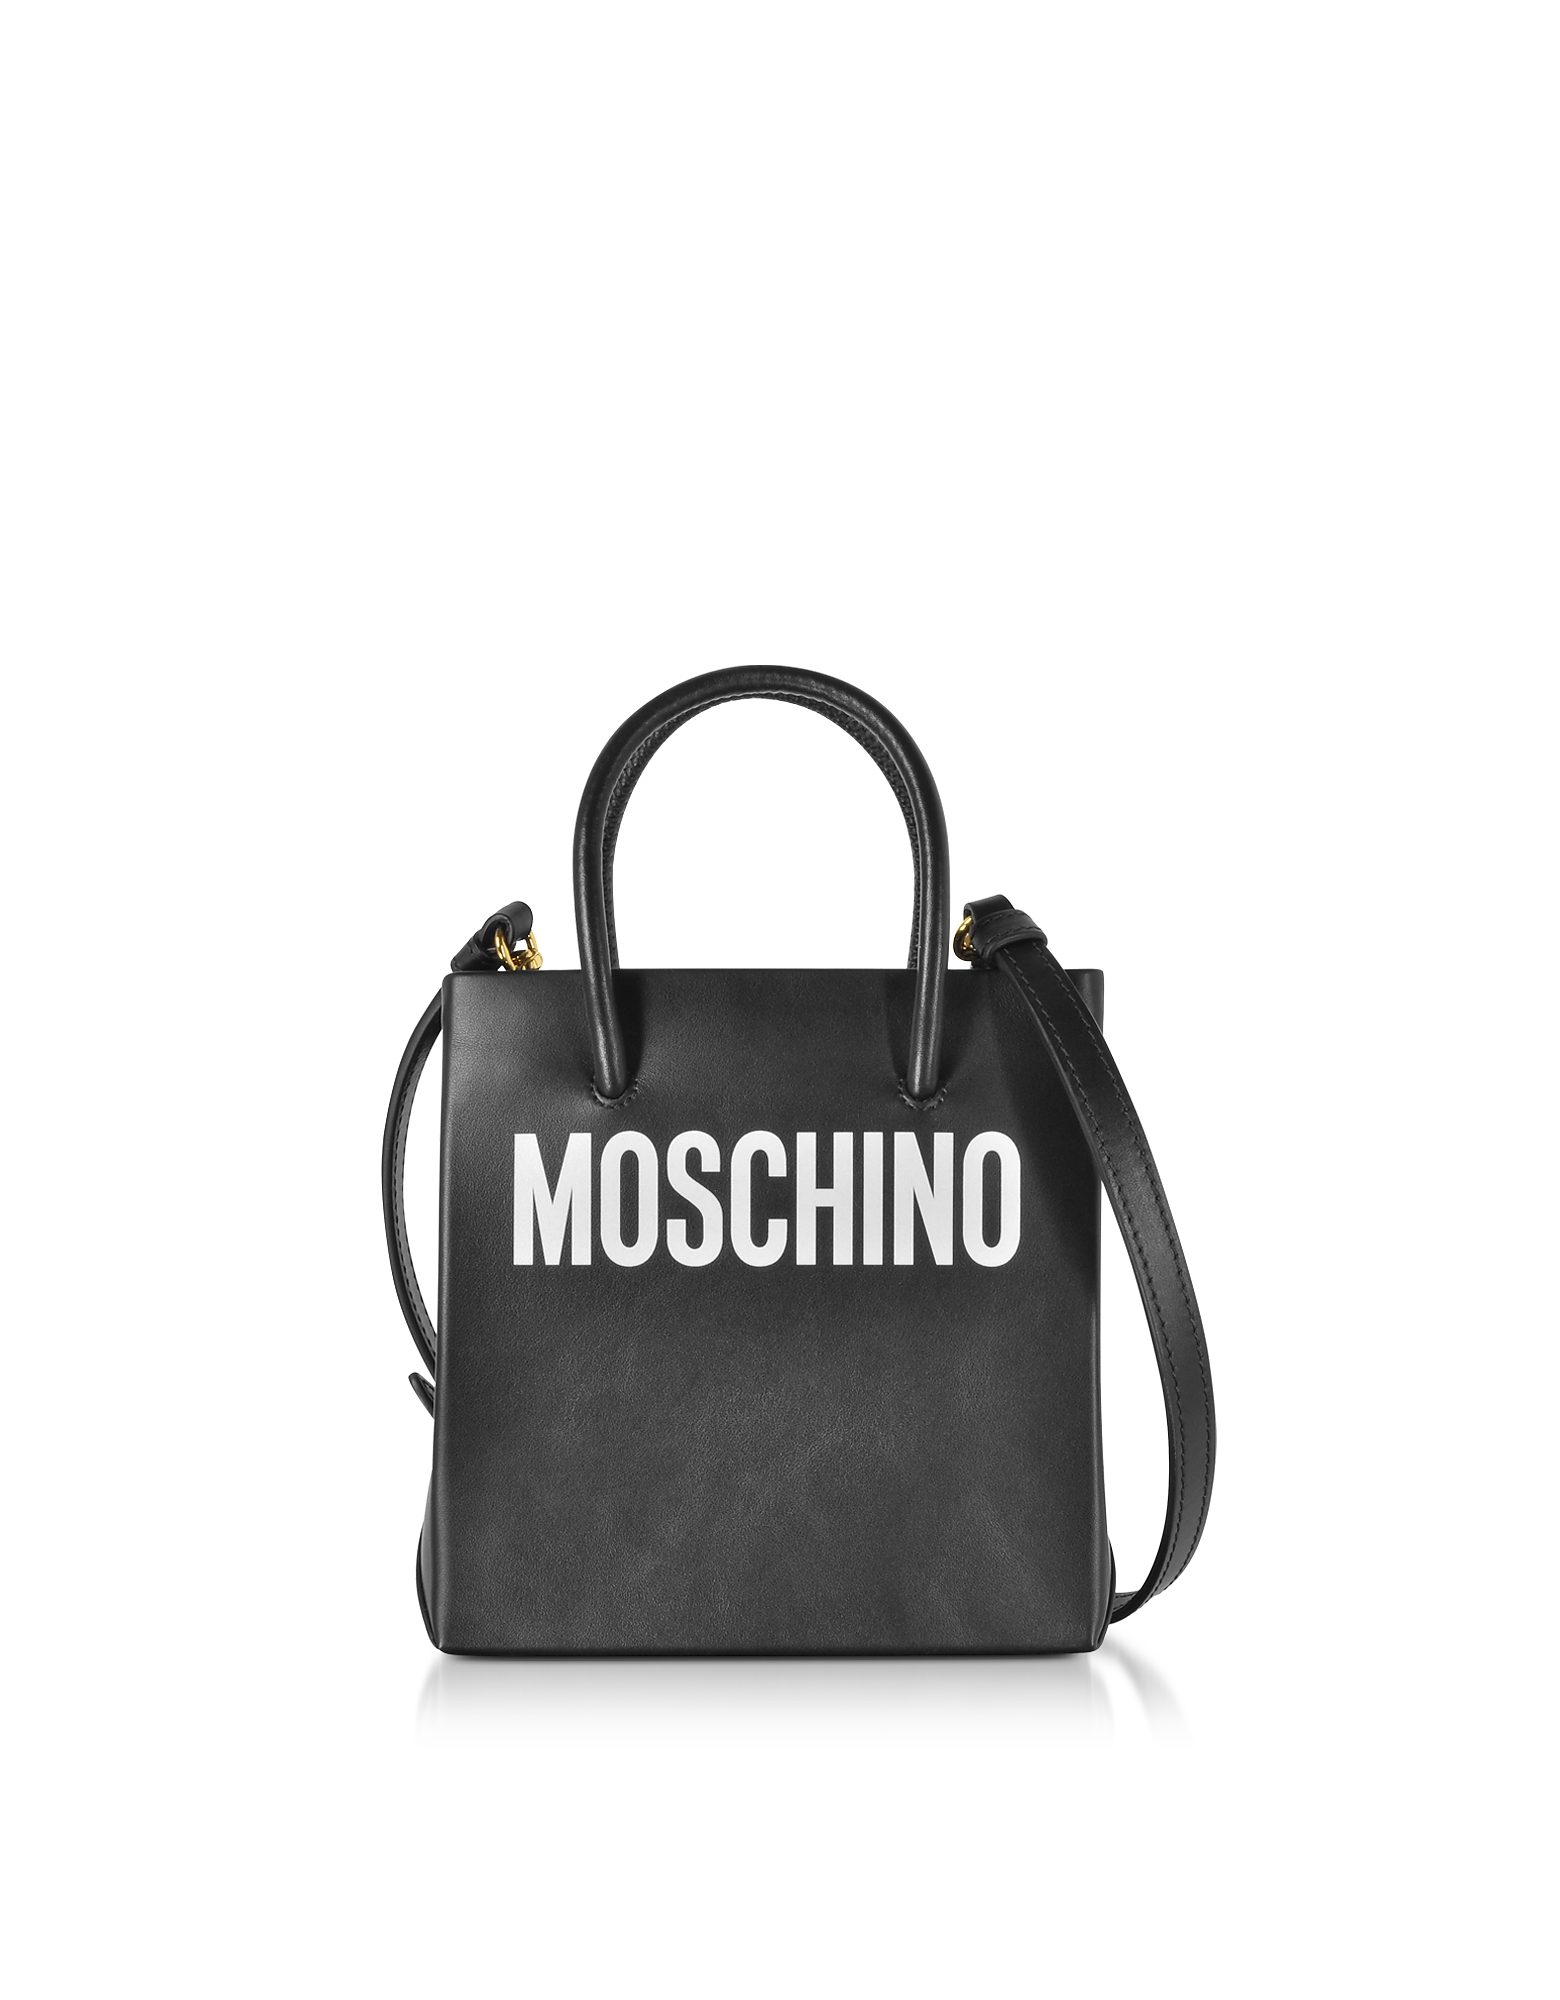 Moschino Handbags, Black Leather Signature Tote Bag